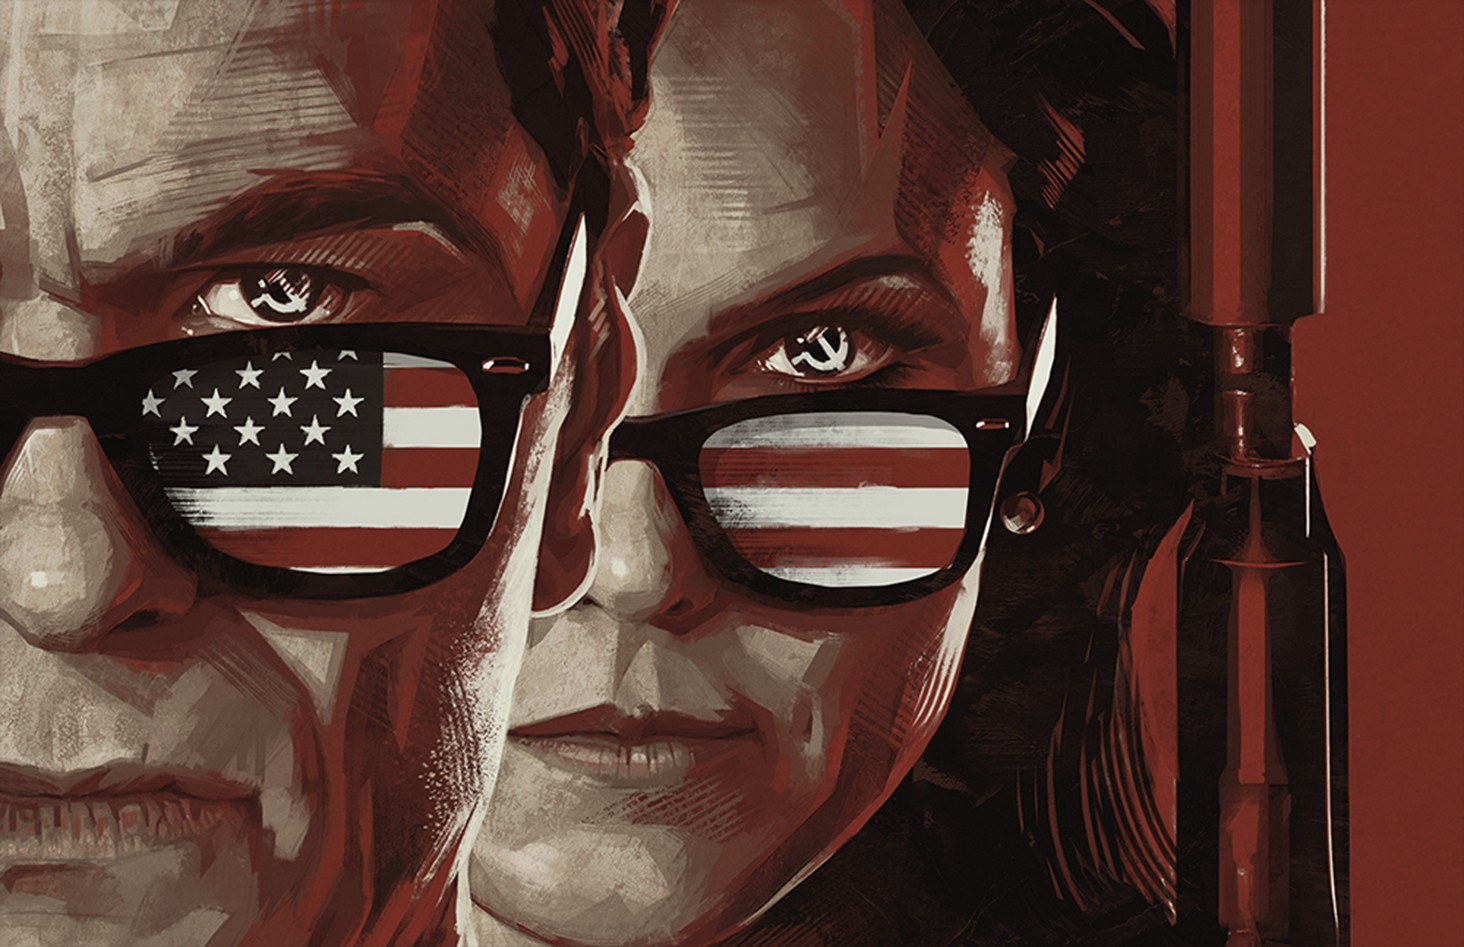 Celebrate Comrades: The Americans Has Been Renewed For A Fourth Season